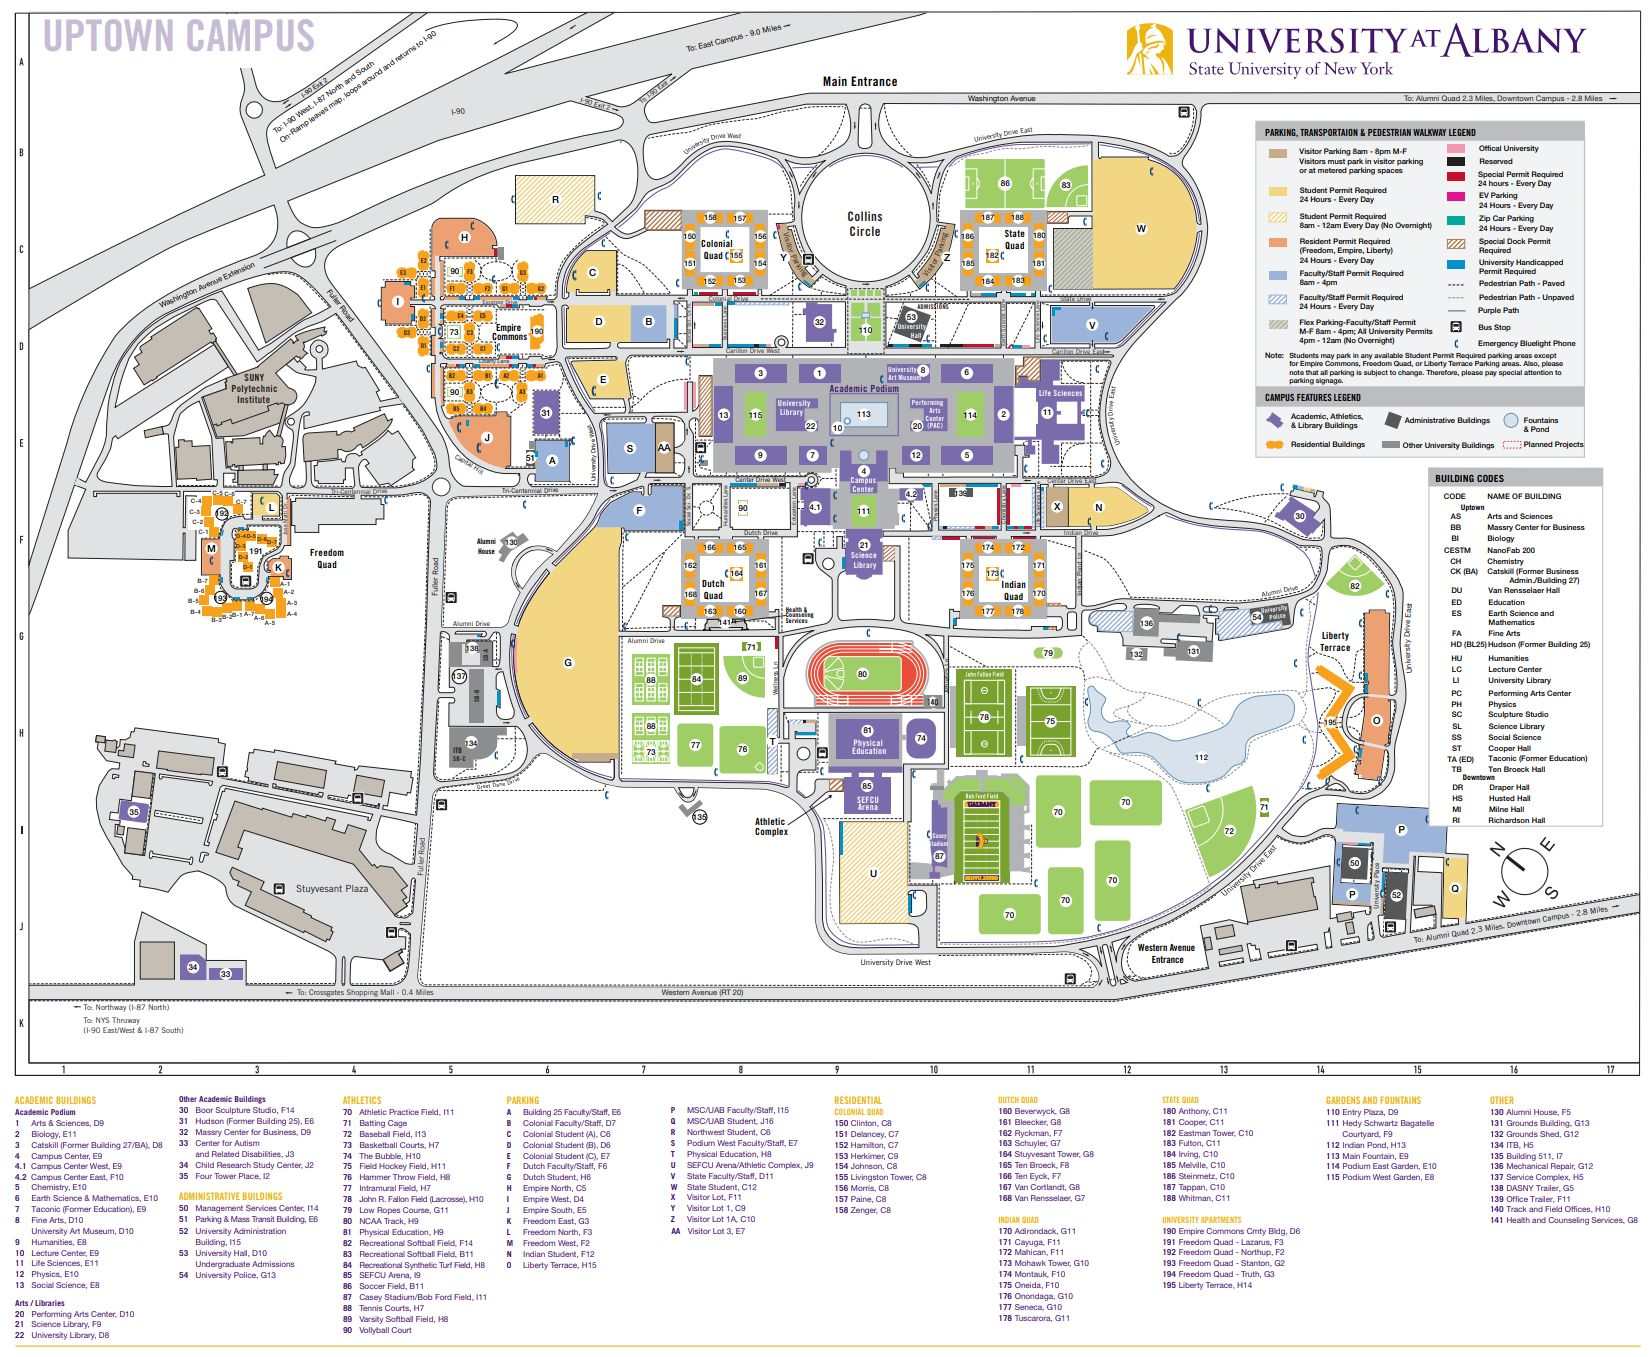 suny old westbury campus map Campus Maps And Directions University At Albany suny old westbury campus map